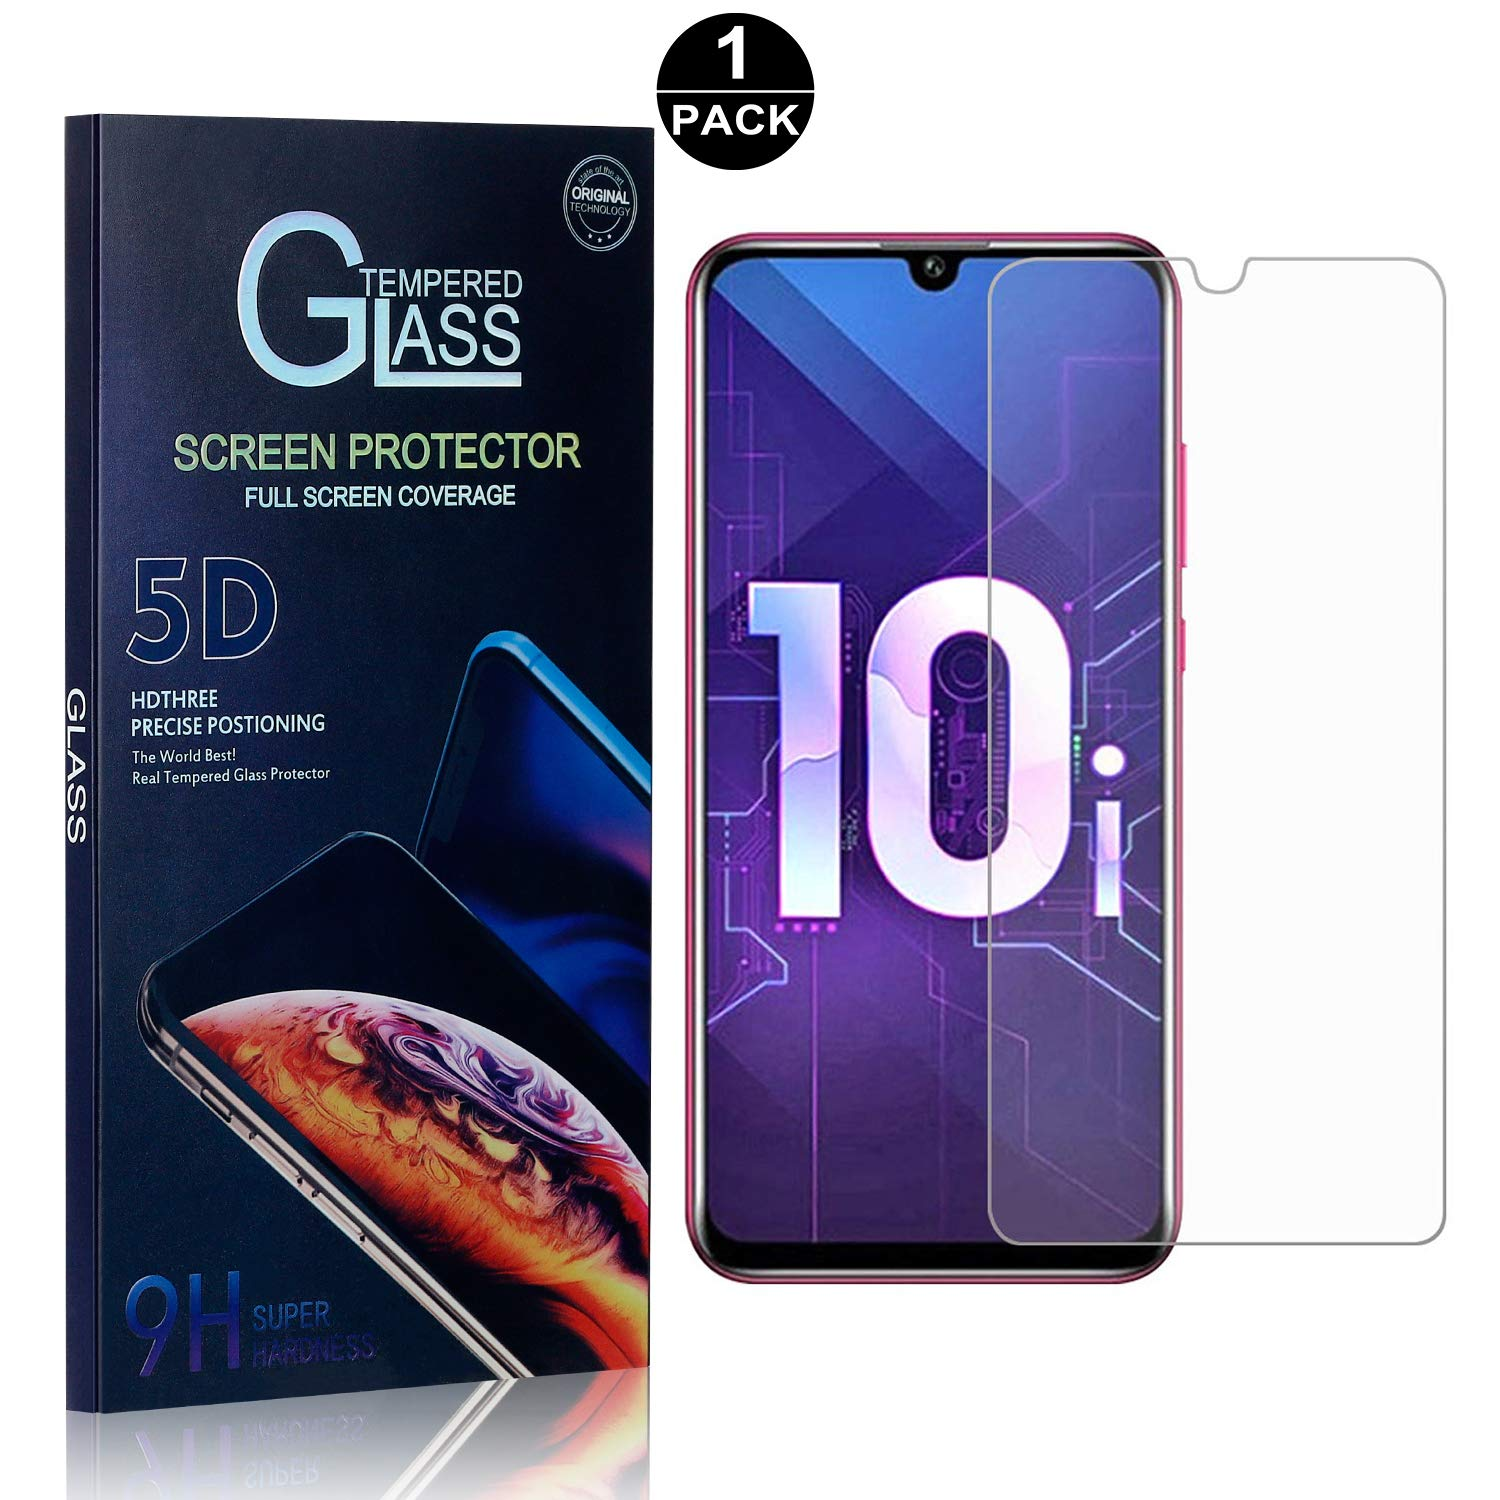 1 Pack Bear Village Screen Protector for Huawei Honor 10i 9H Hardness Tempered Glass Screen Protector Anti Scratch Screen Protector Glass for Huawei Honor 10i